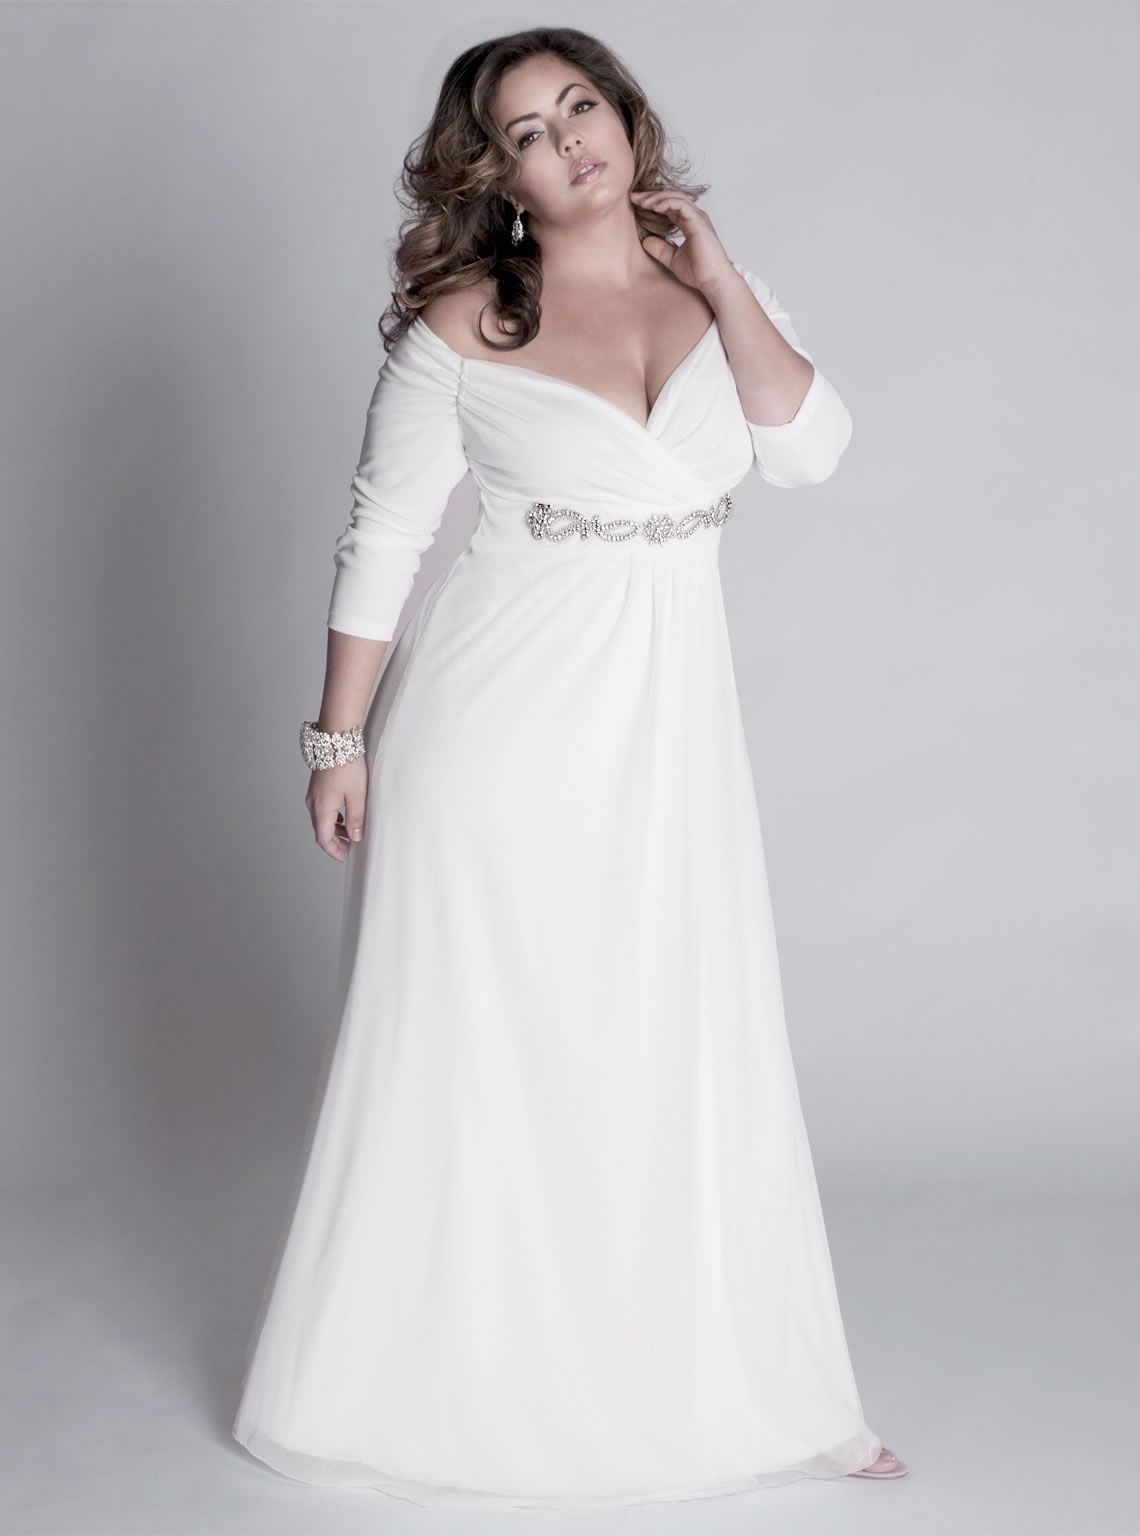 Plus Size Wedding Dresses Ball Gown | Plus size wedding gowns ...